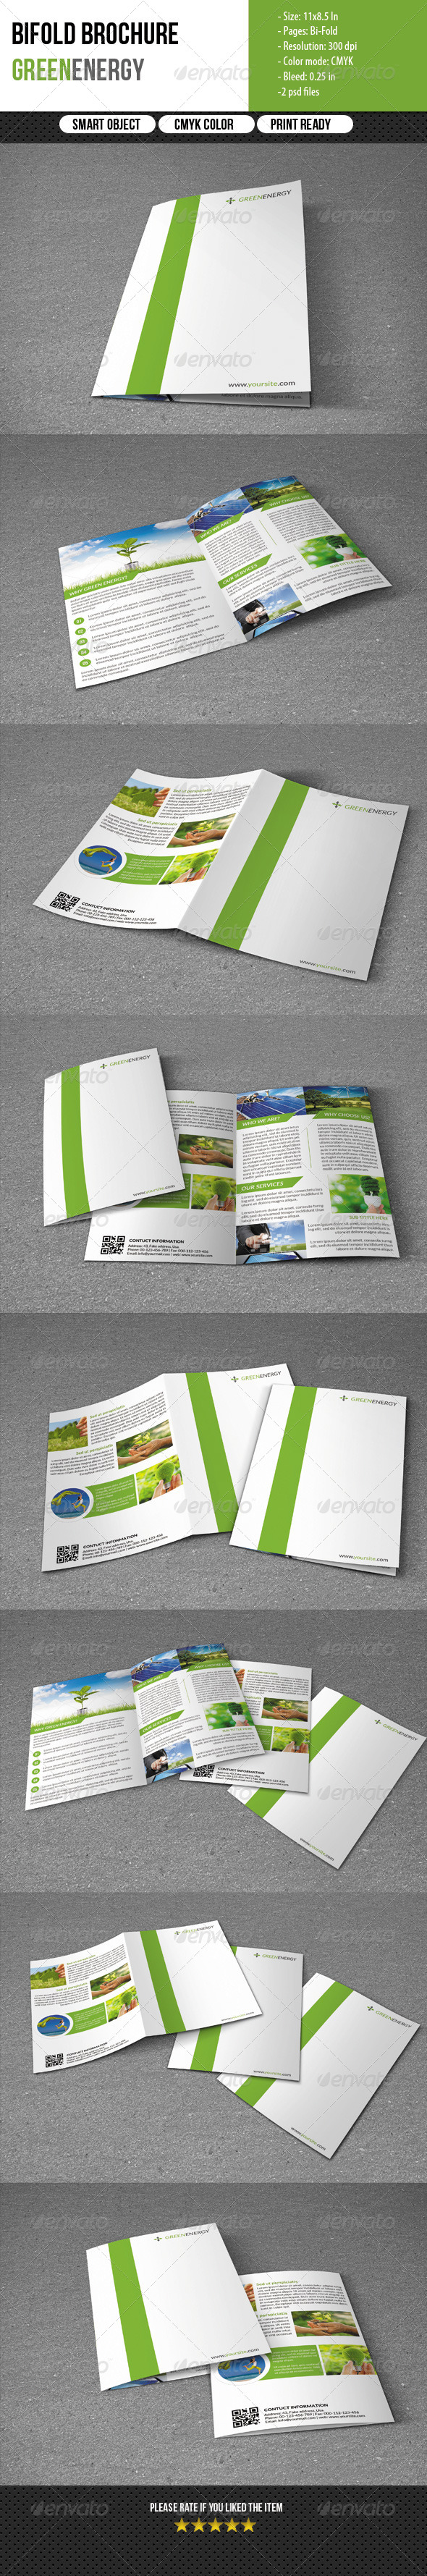 GraphicRiver Bifold Brochure for Green Energy 5712937